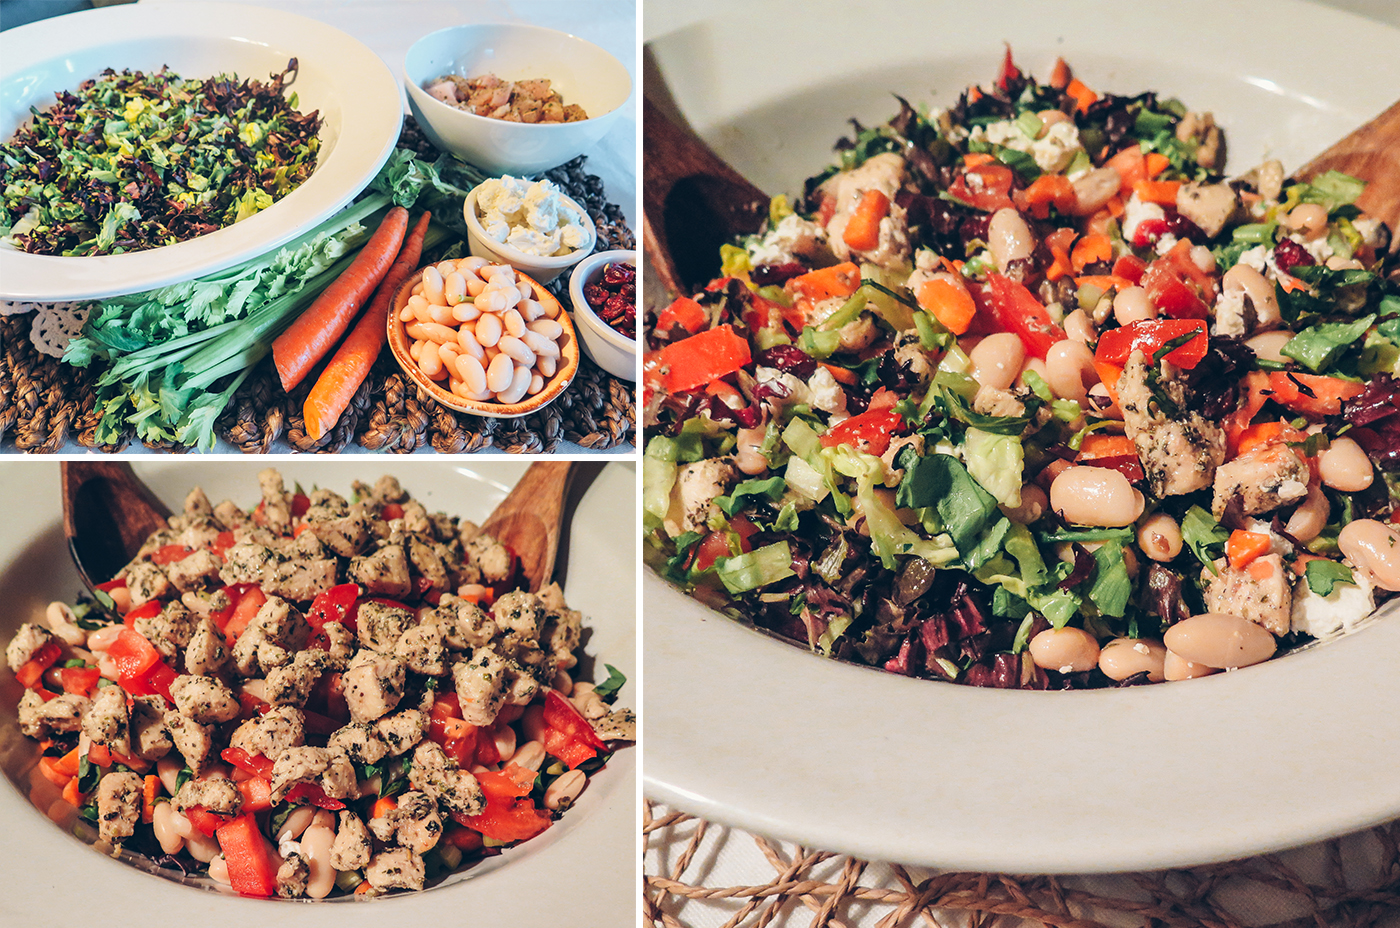 chopped salad, italian, cooking, home, monicapotter, monica potter, monica potter home